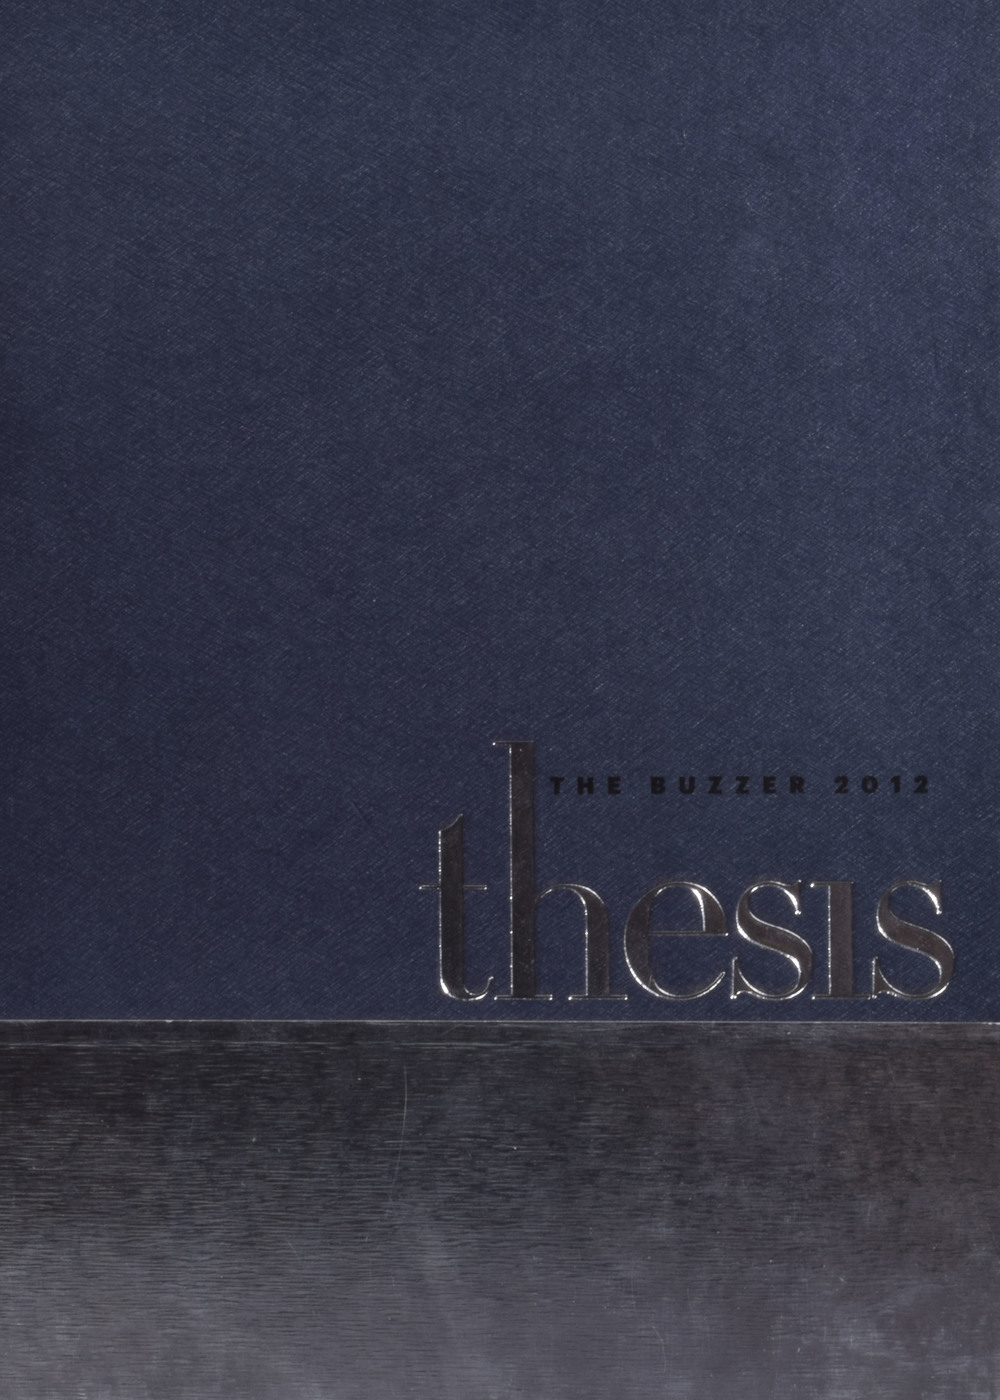 2012 Thesis, Vol. 85 - - - Gold Crown (CSPA), Pacemaker (NSPA) State Trophy Class (VHSL)